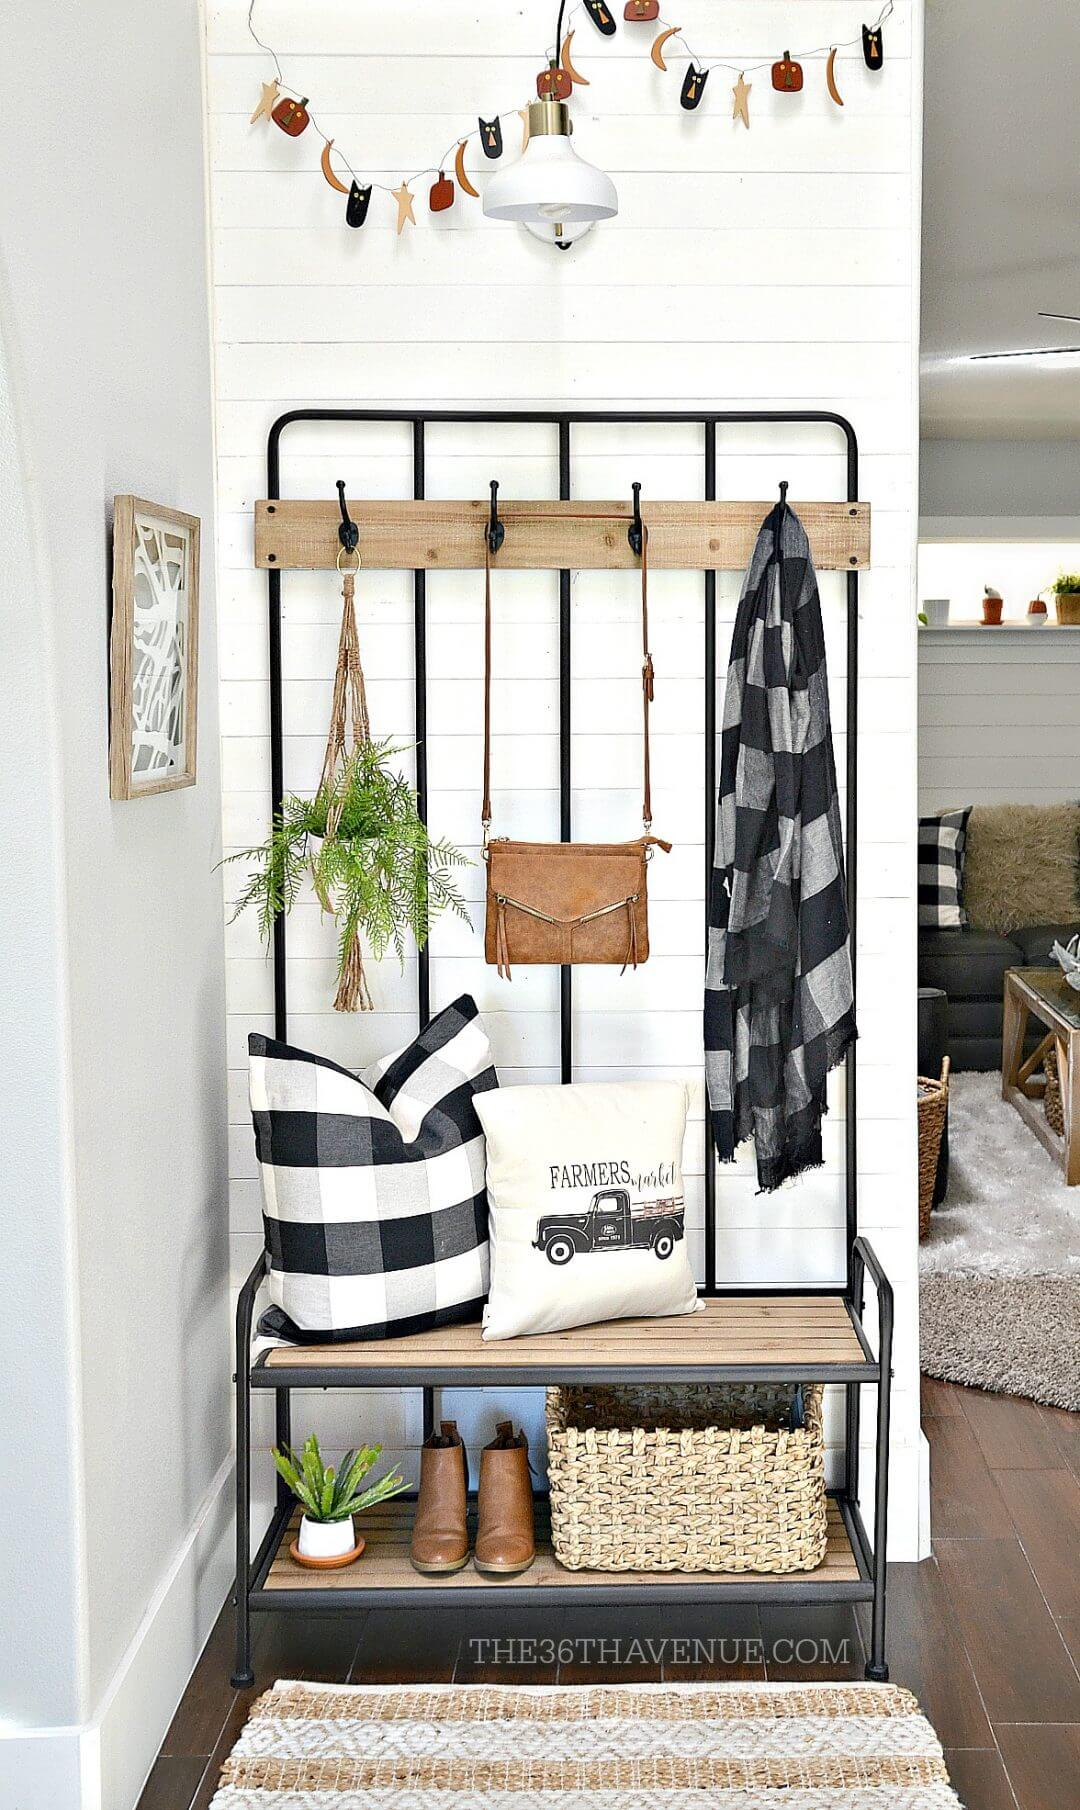 Small Foyer Wall Decor : Best small entryway decor ideas and designs for